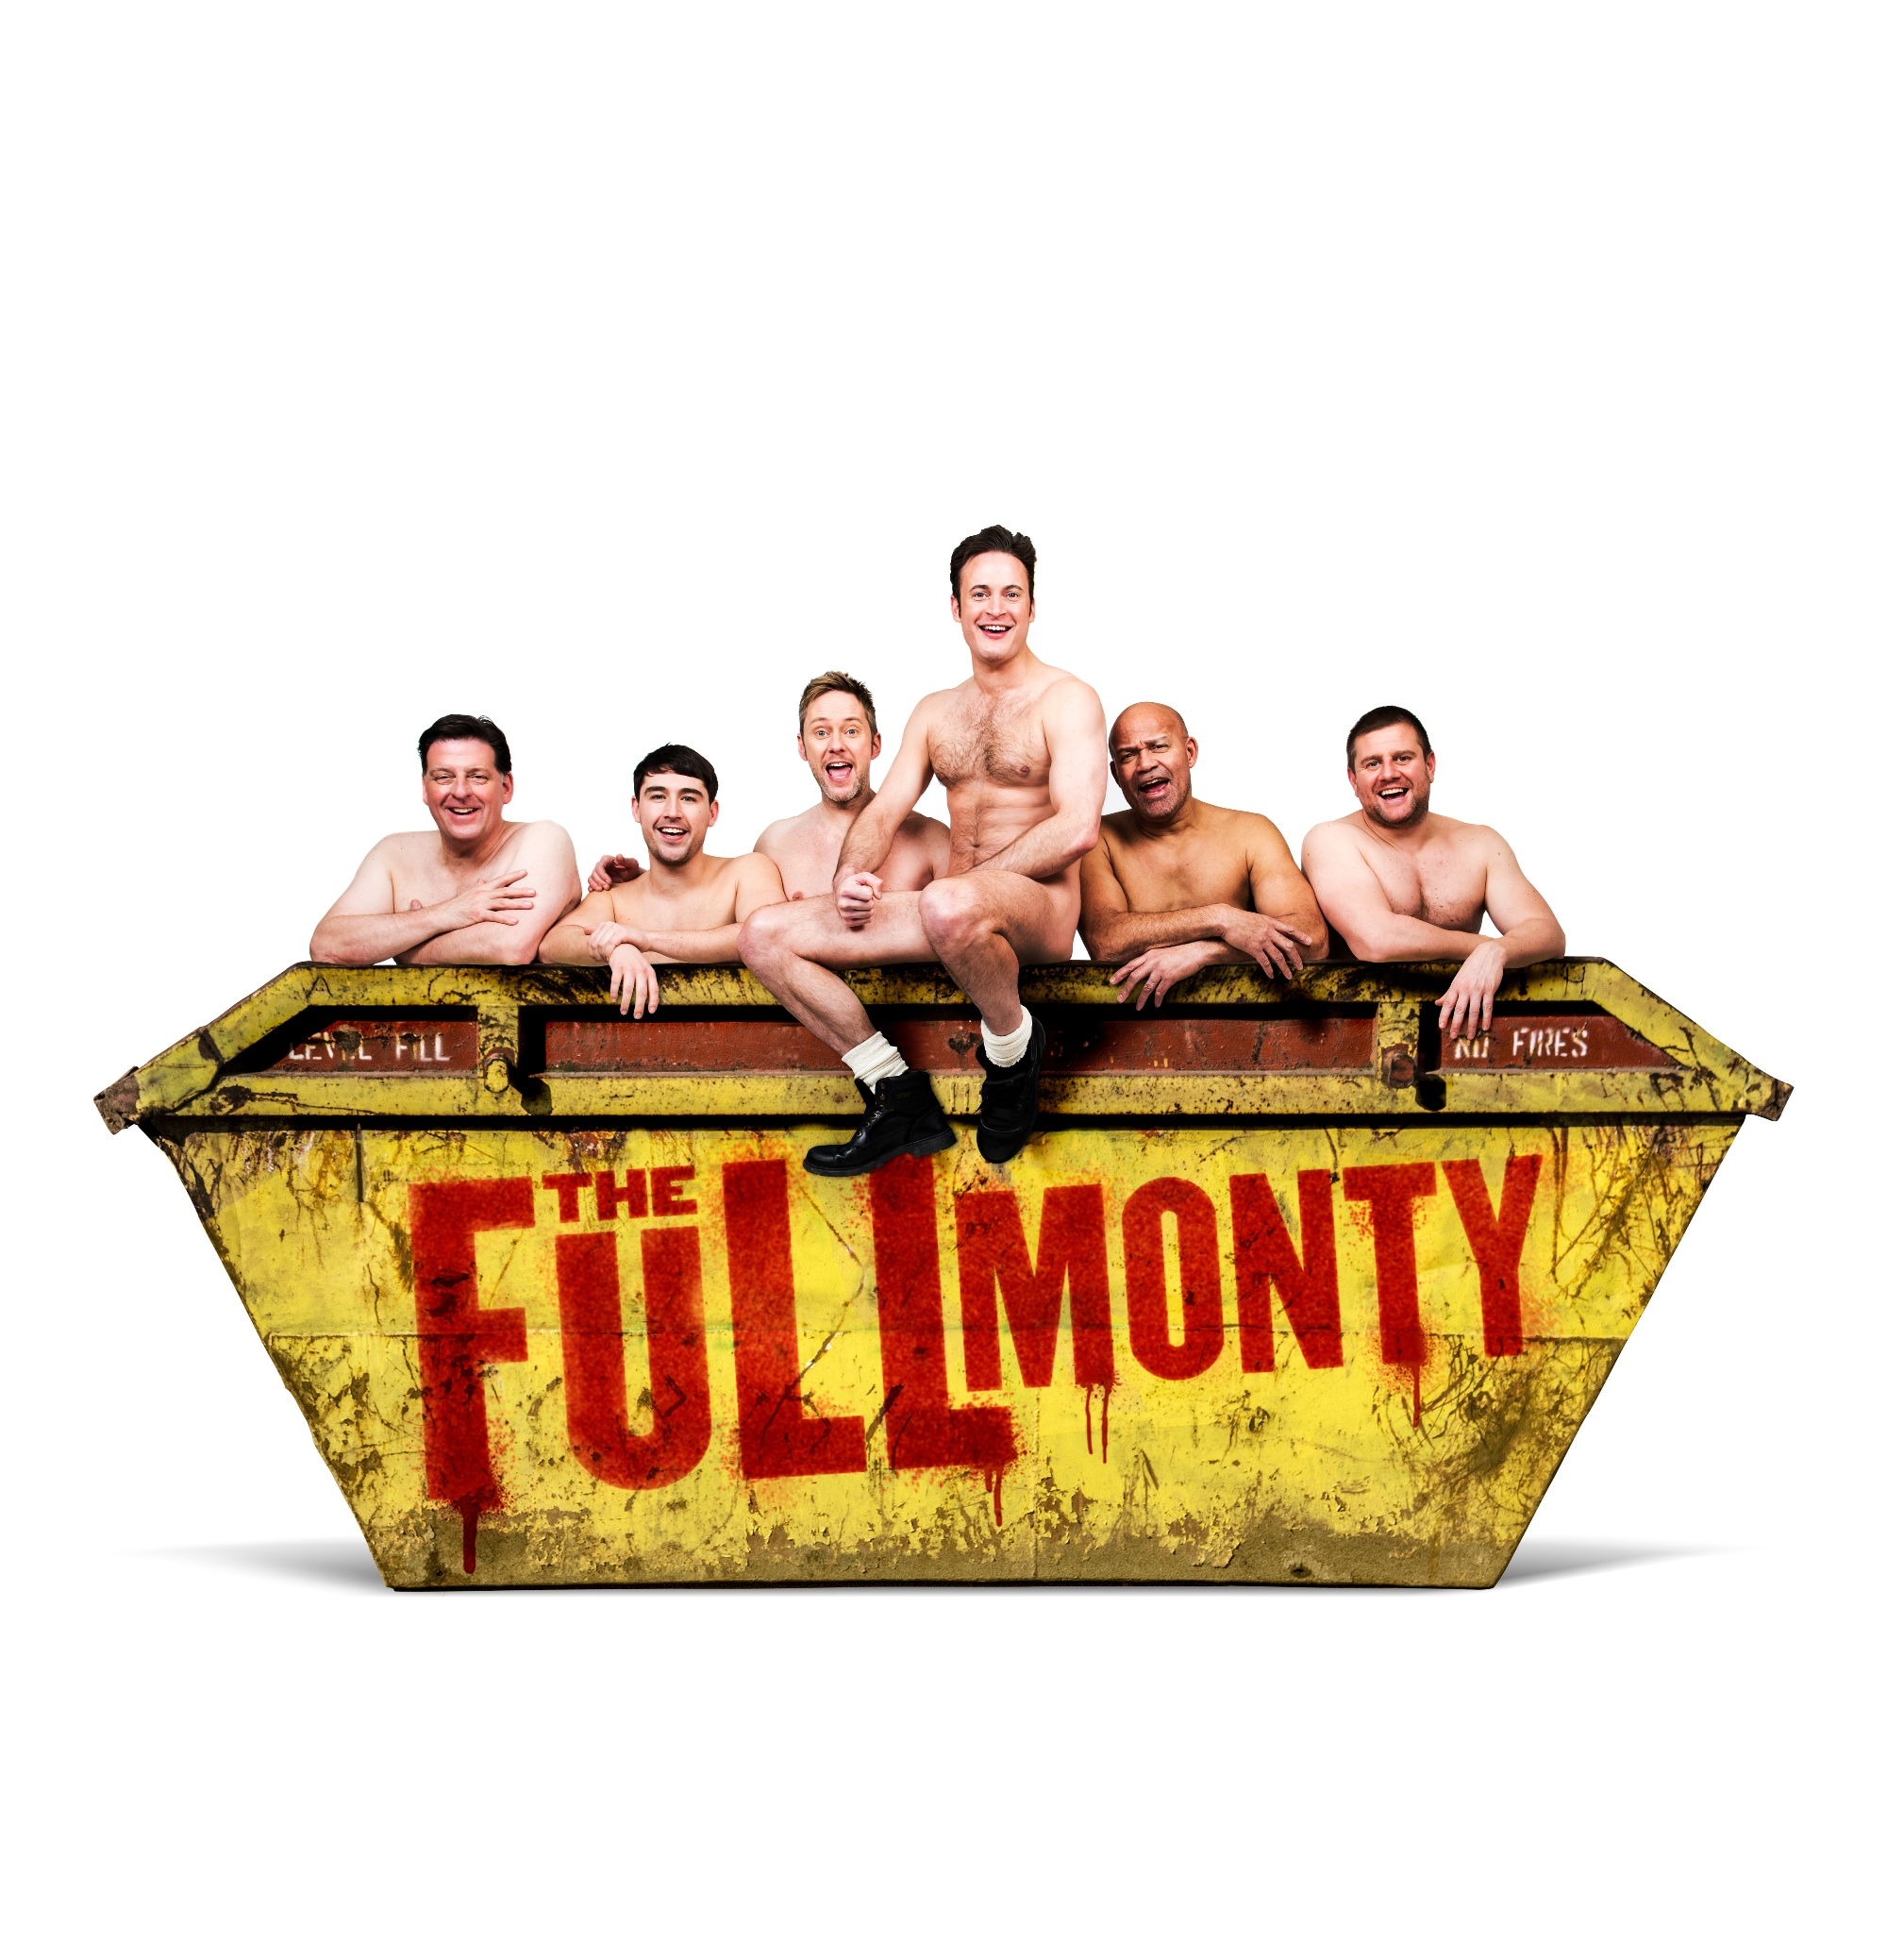 The Full Monty, Sheffield Theatres production, By Simon Beaufoy